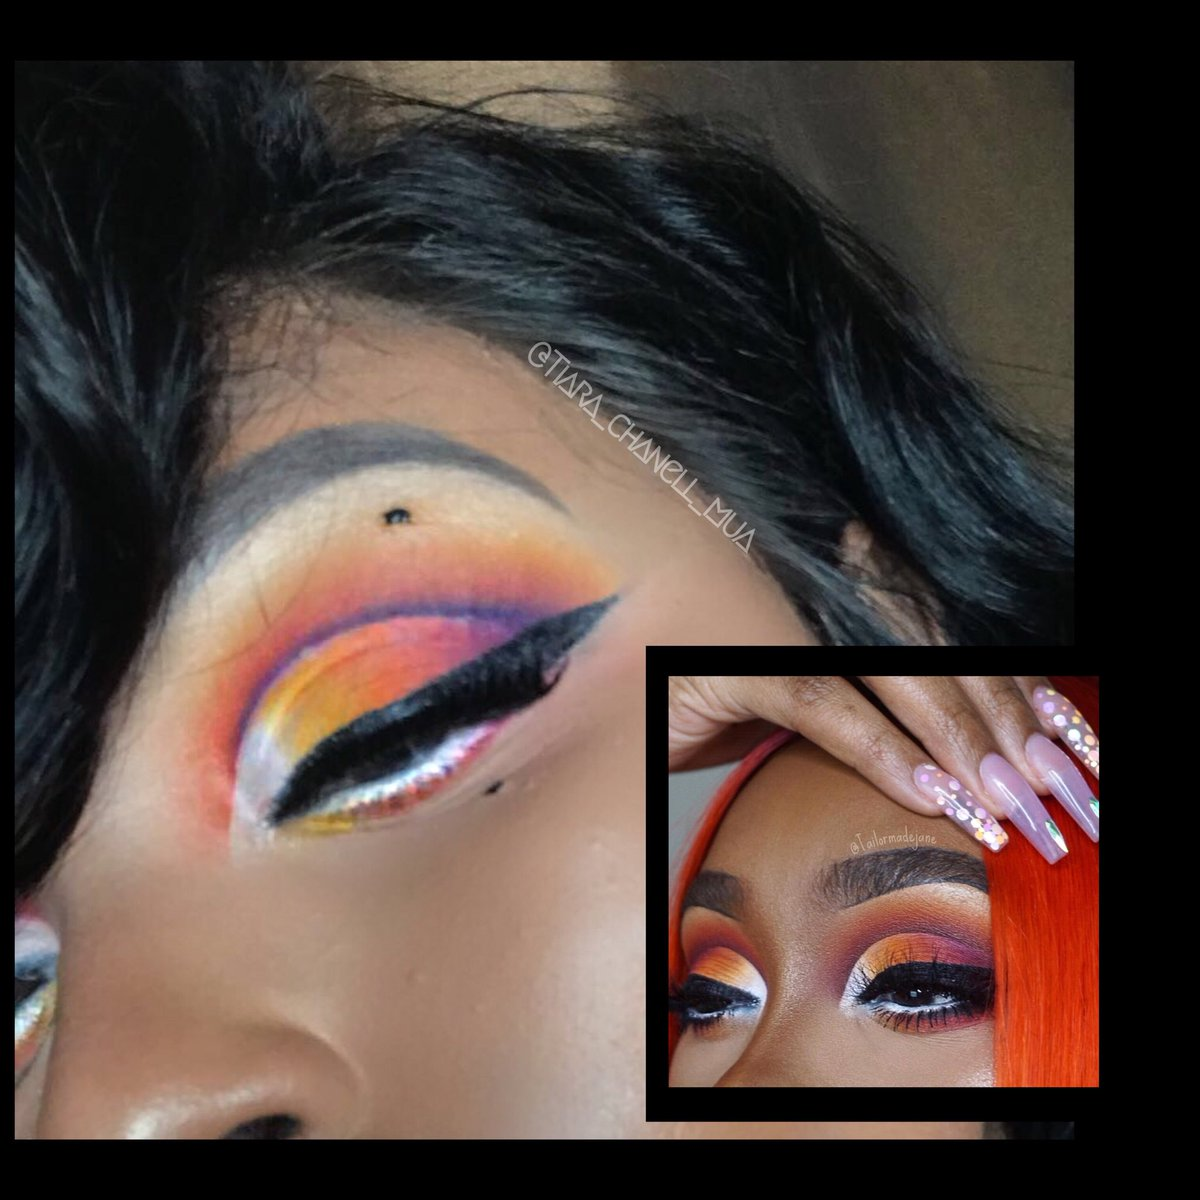 Good Morning Sweet Faces😘👋🏾 I'm crushing over this look inspired by @Tailormadejane 🤗 I can't wait to get my @plouiseacademy eyeshadow palette and eyeshadow base🙌🏾 this look was done with my @MorpheBrushes 35B palette SEE INSTAGRAM PAGE  🔥@tiara_chanell_mua🔥 FOR DETAILS